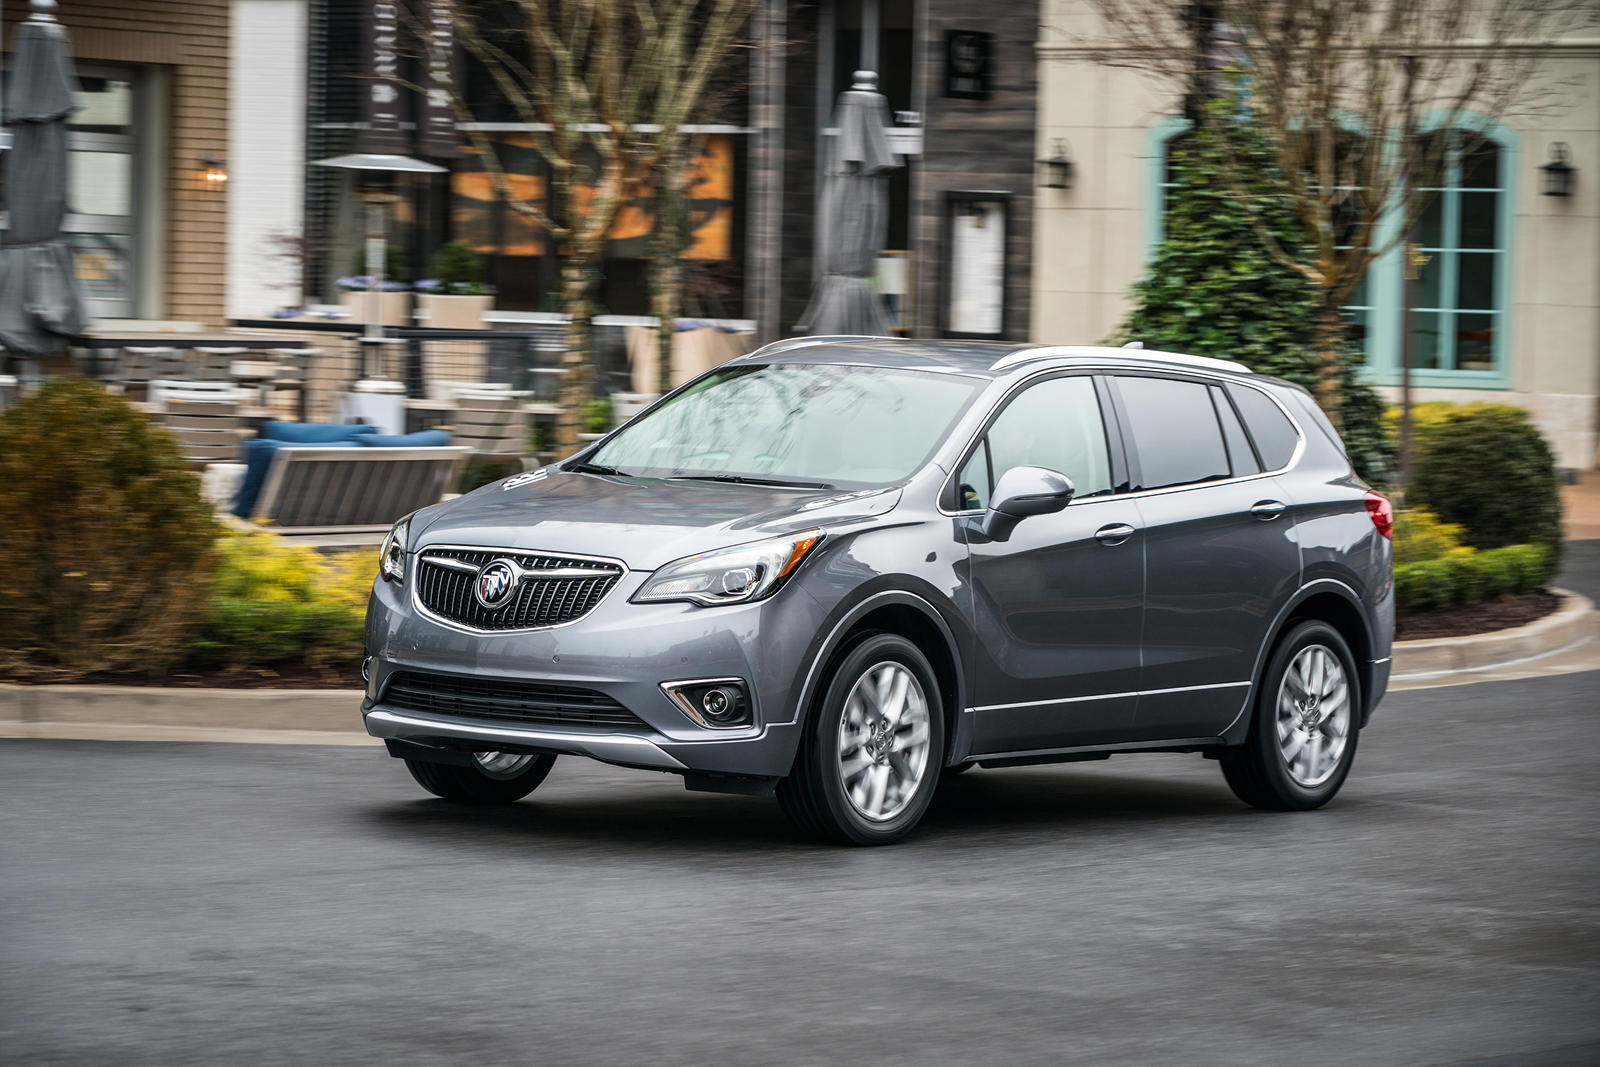 2020 Buick Envision: Review, Trims, Specs, Price, New New 2021 Buick Envision Weight, Wheelbase, 0-60